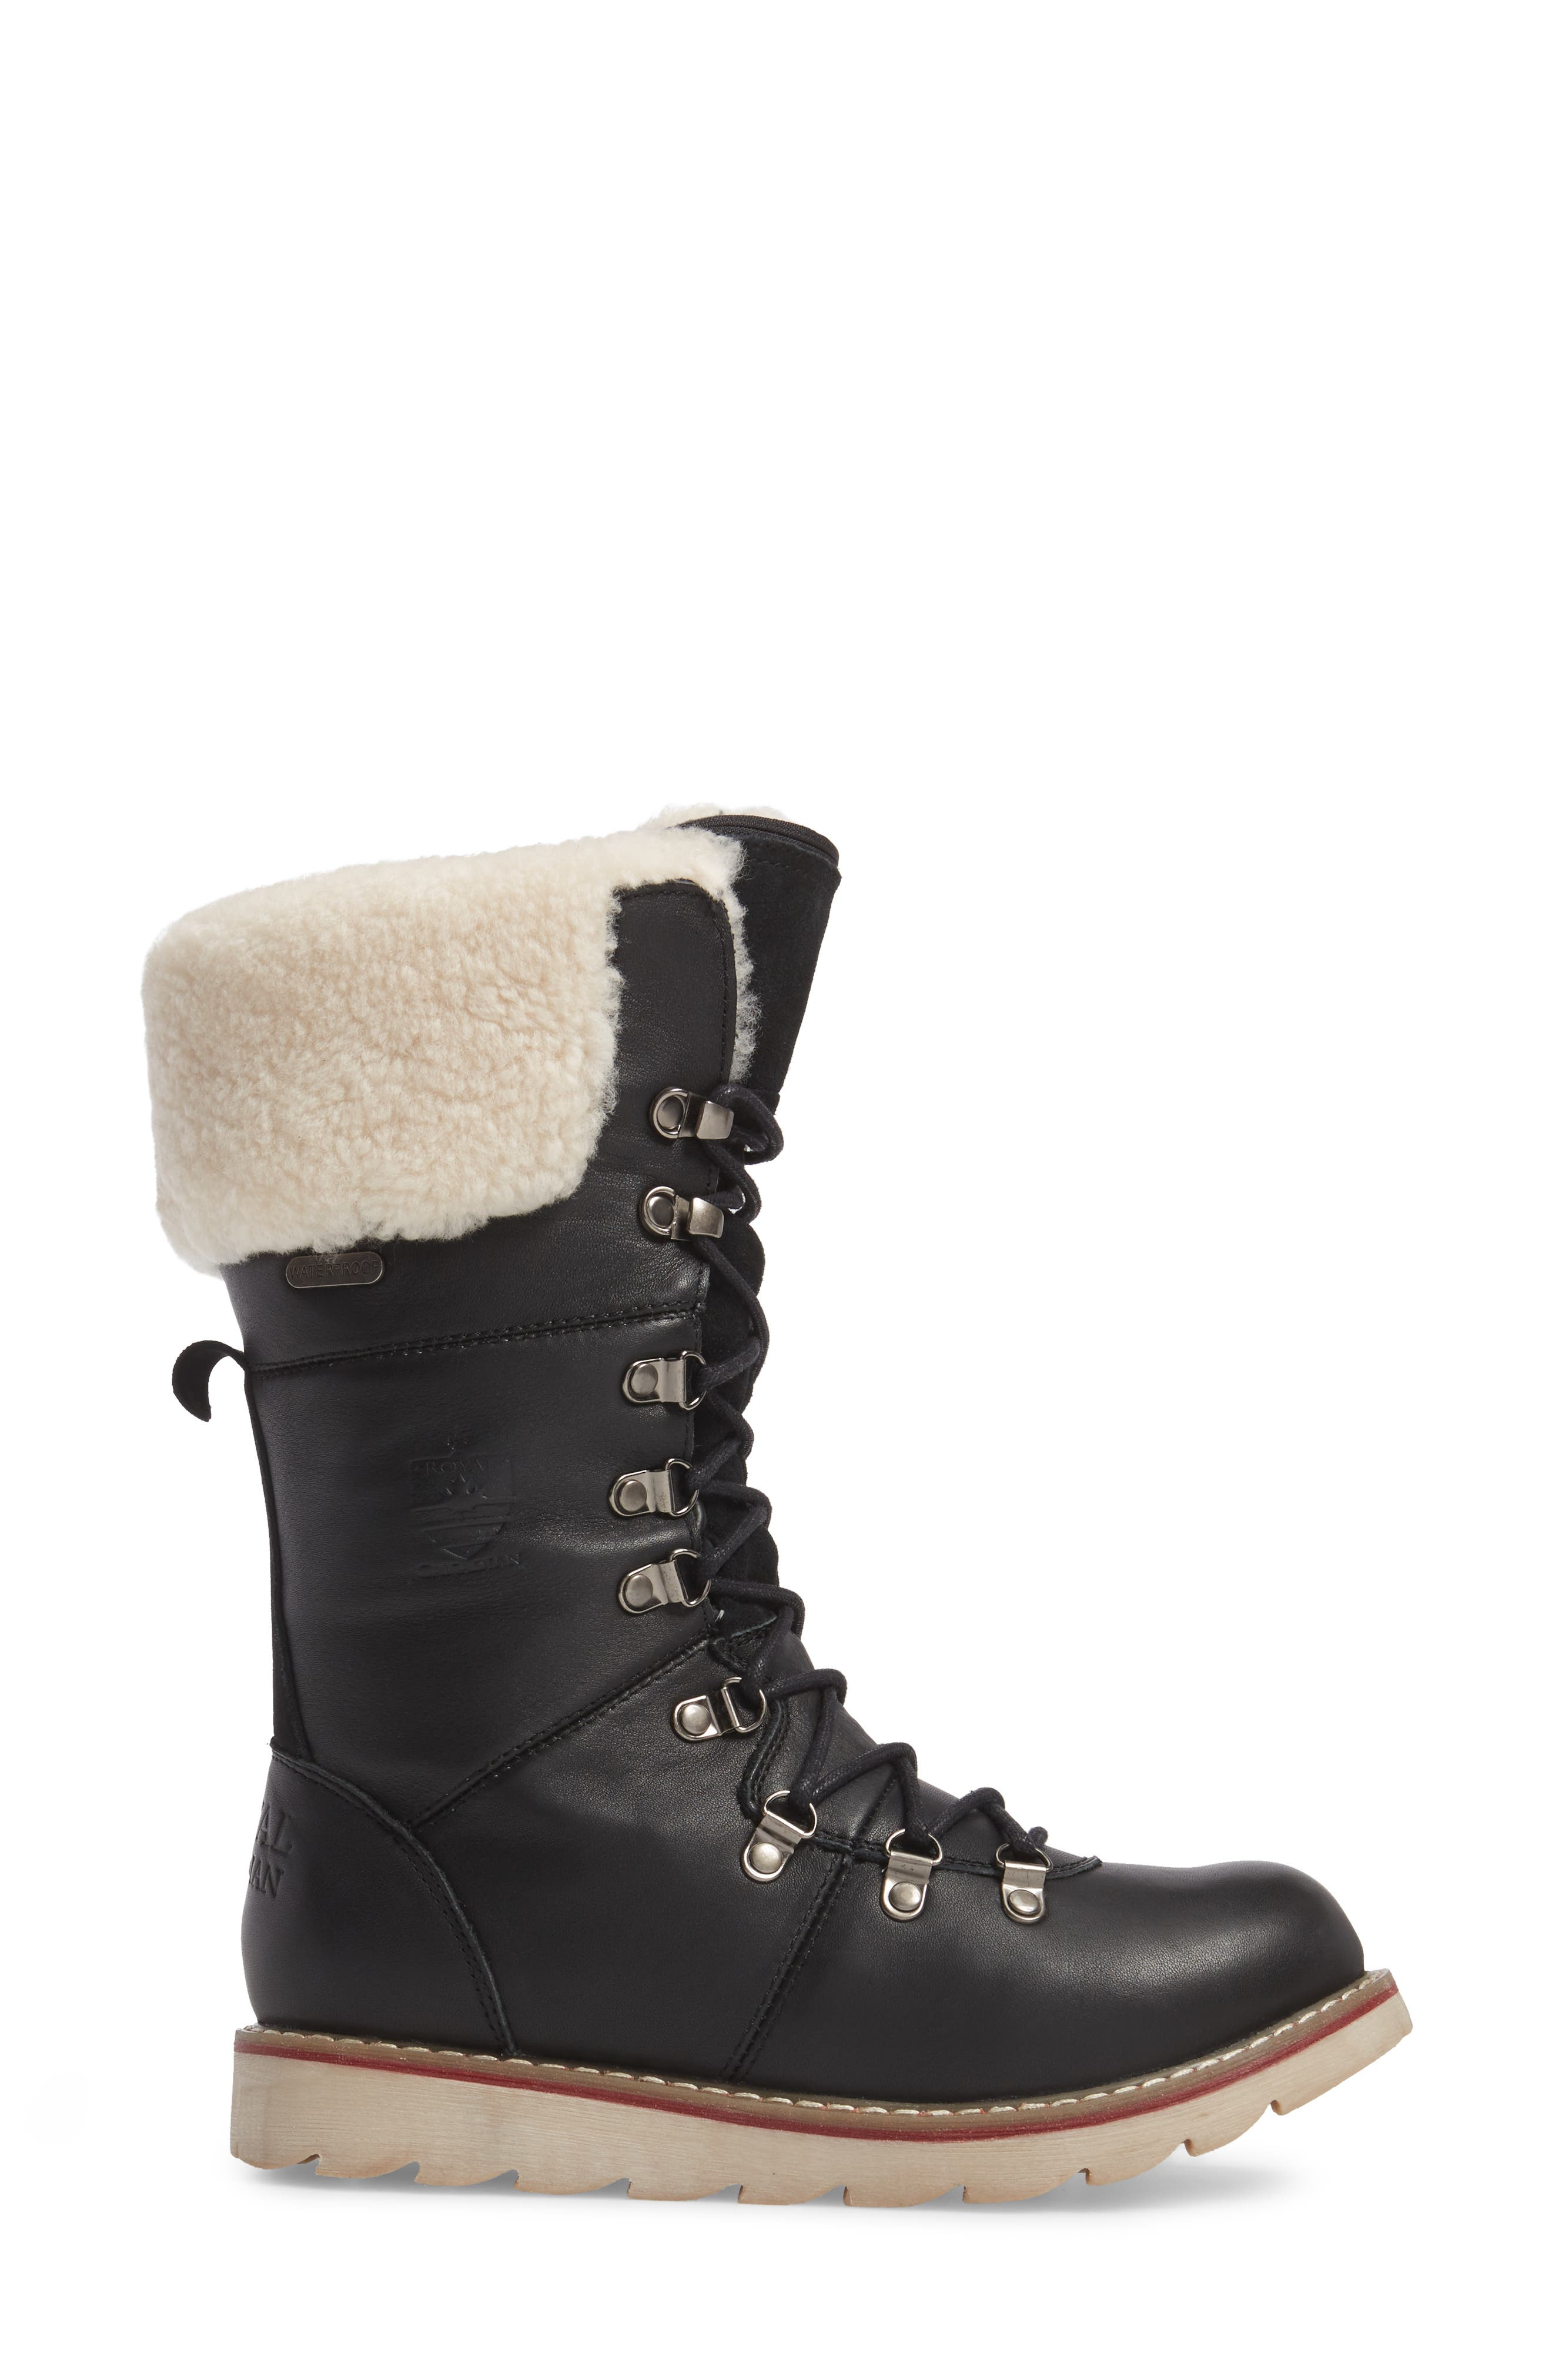 Louise Waterproof Snow Boot with Genuine Shearling Cuff,                             Alternate thumbnail 3, color,                             Black Leather